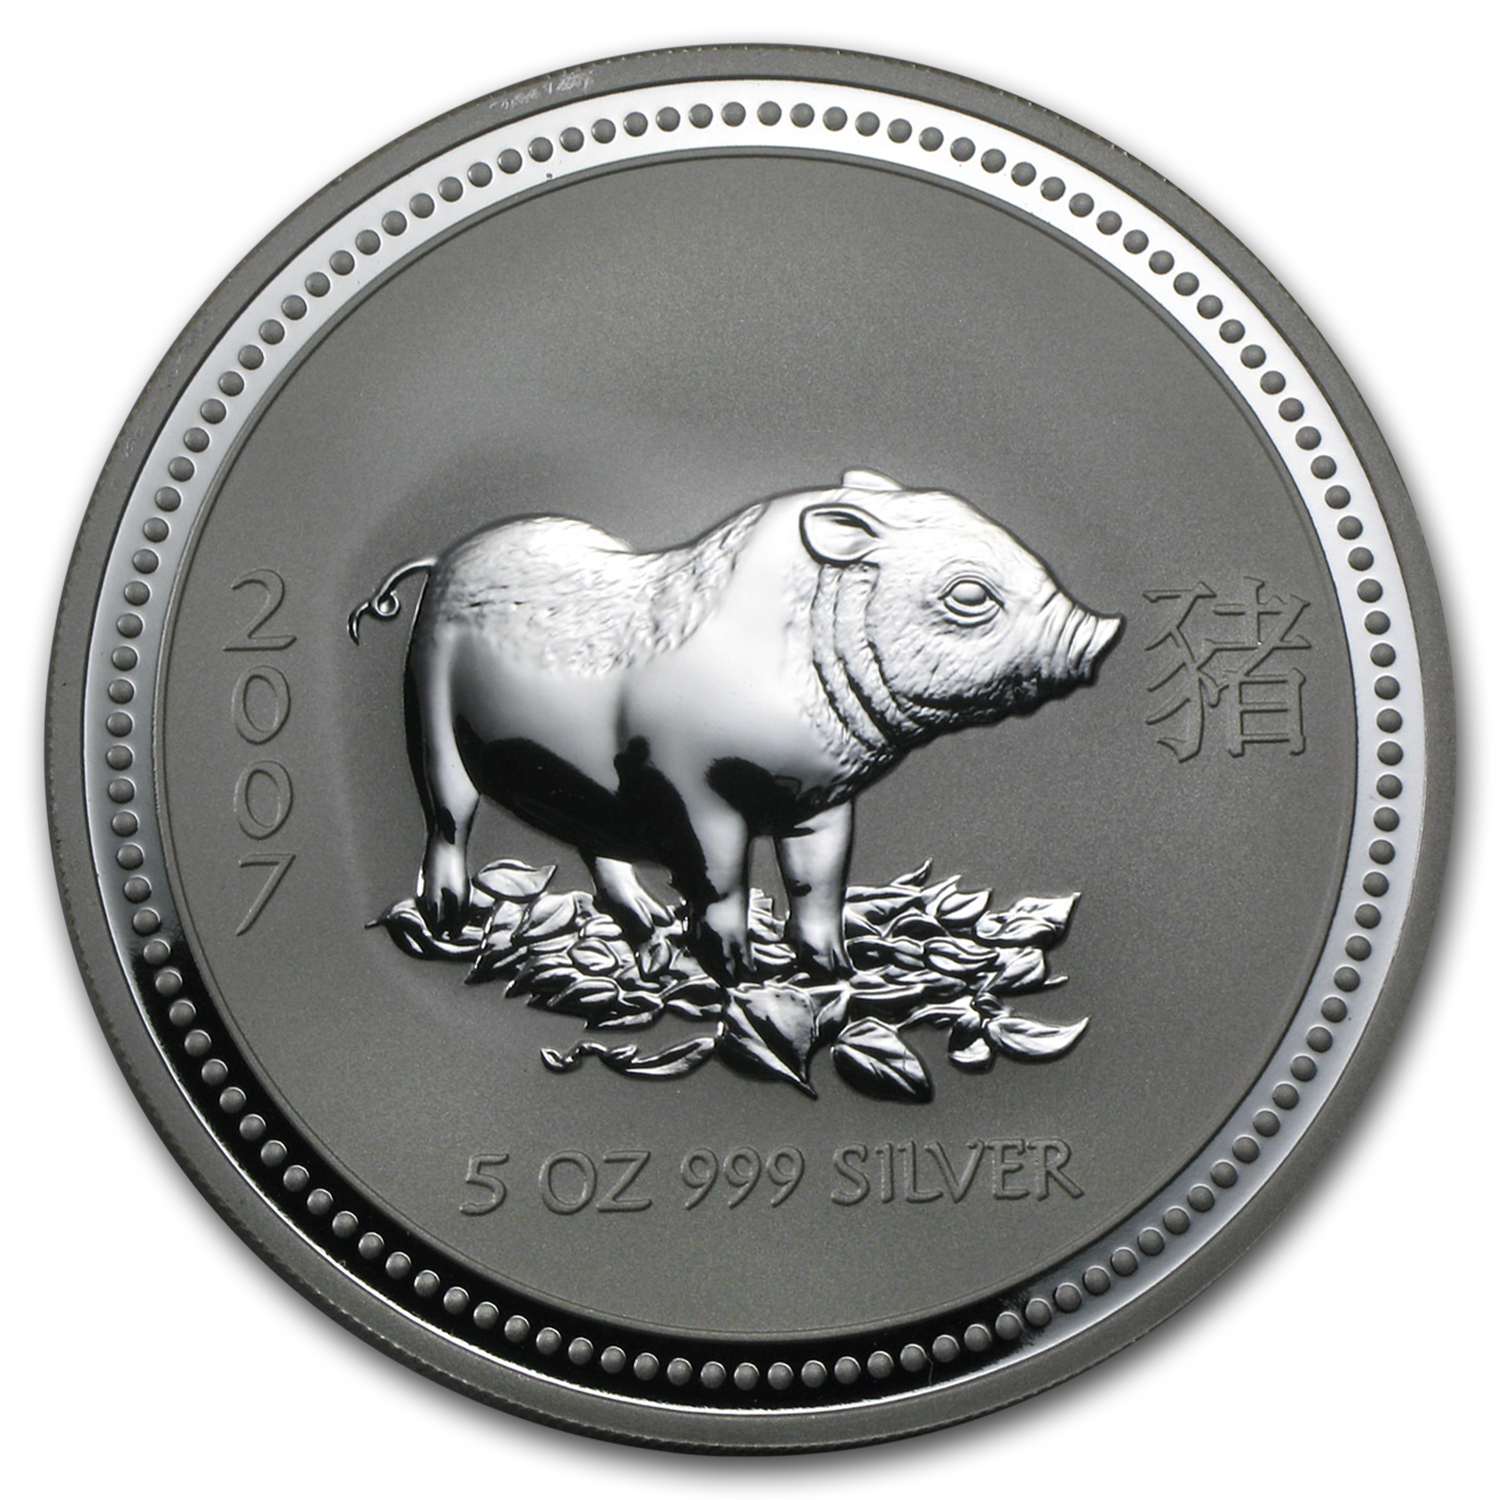 2007 Australia 5 oz Silver Year of the Pig BU